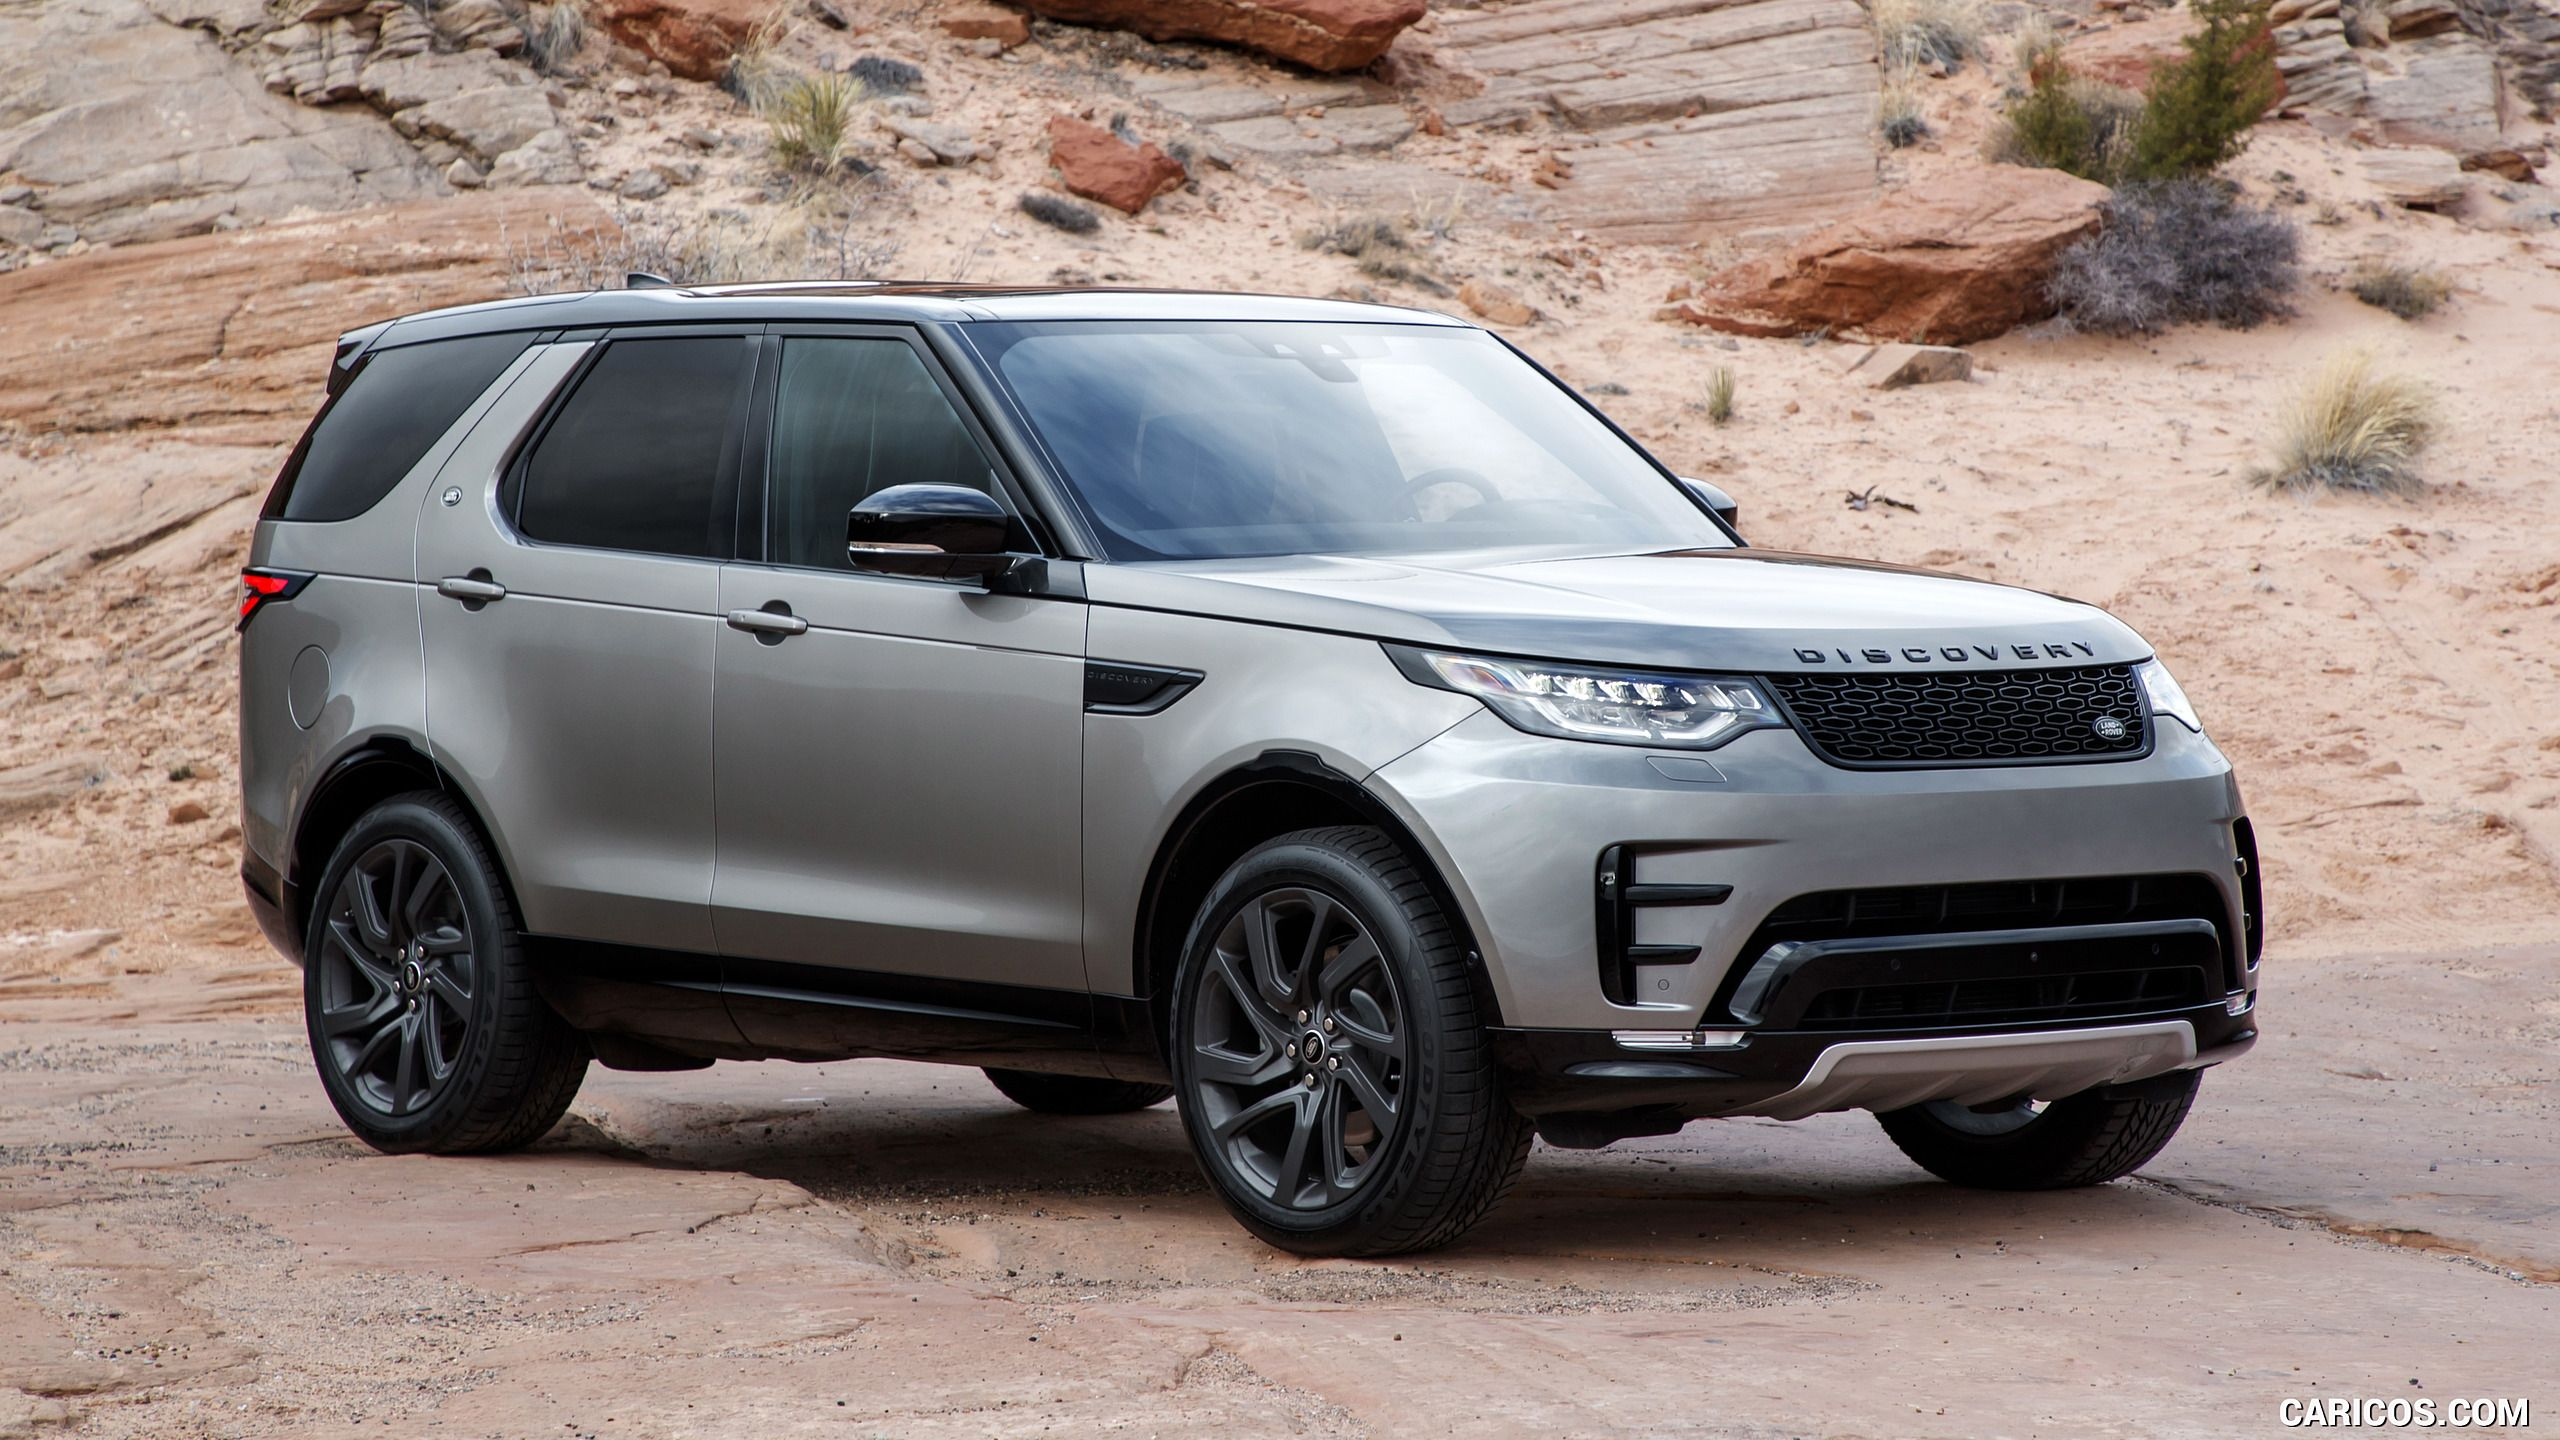 2018 Land Rover Discovery Hse Si6 Color Silicon Silver Us Spec Gorgeous I Love It Land Rover Discovery Hse Land Rover New Land Rover Discovery